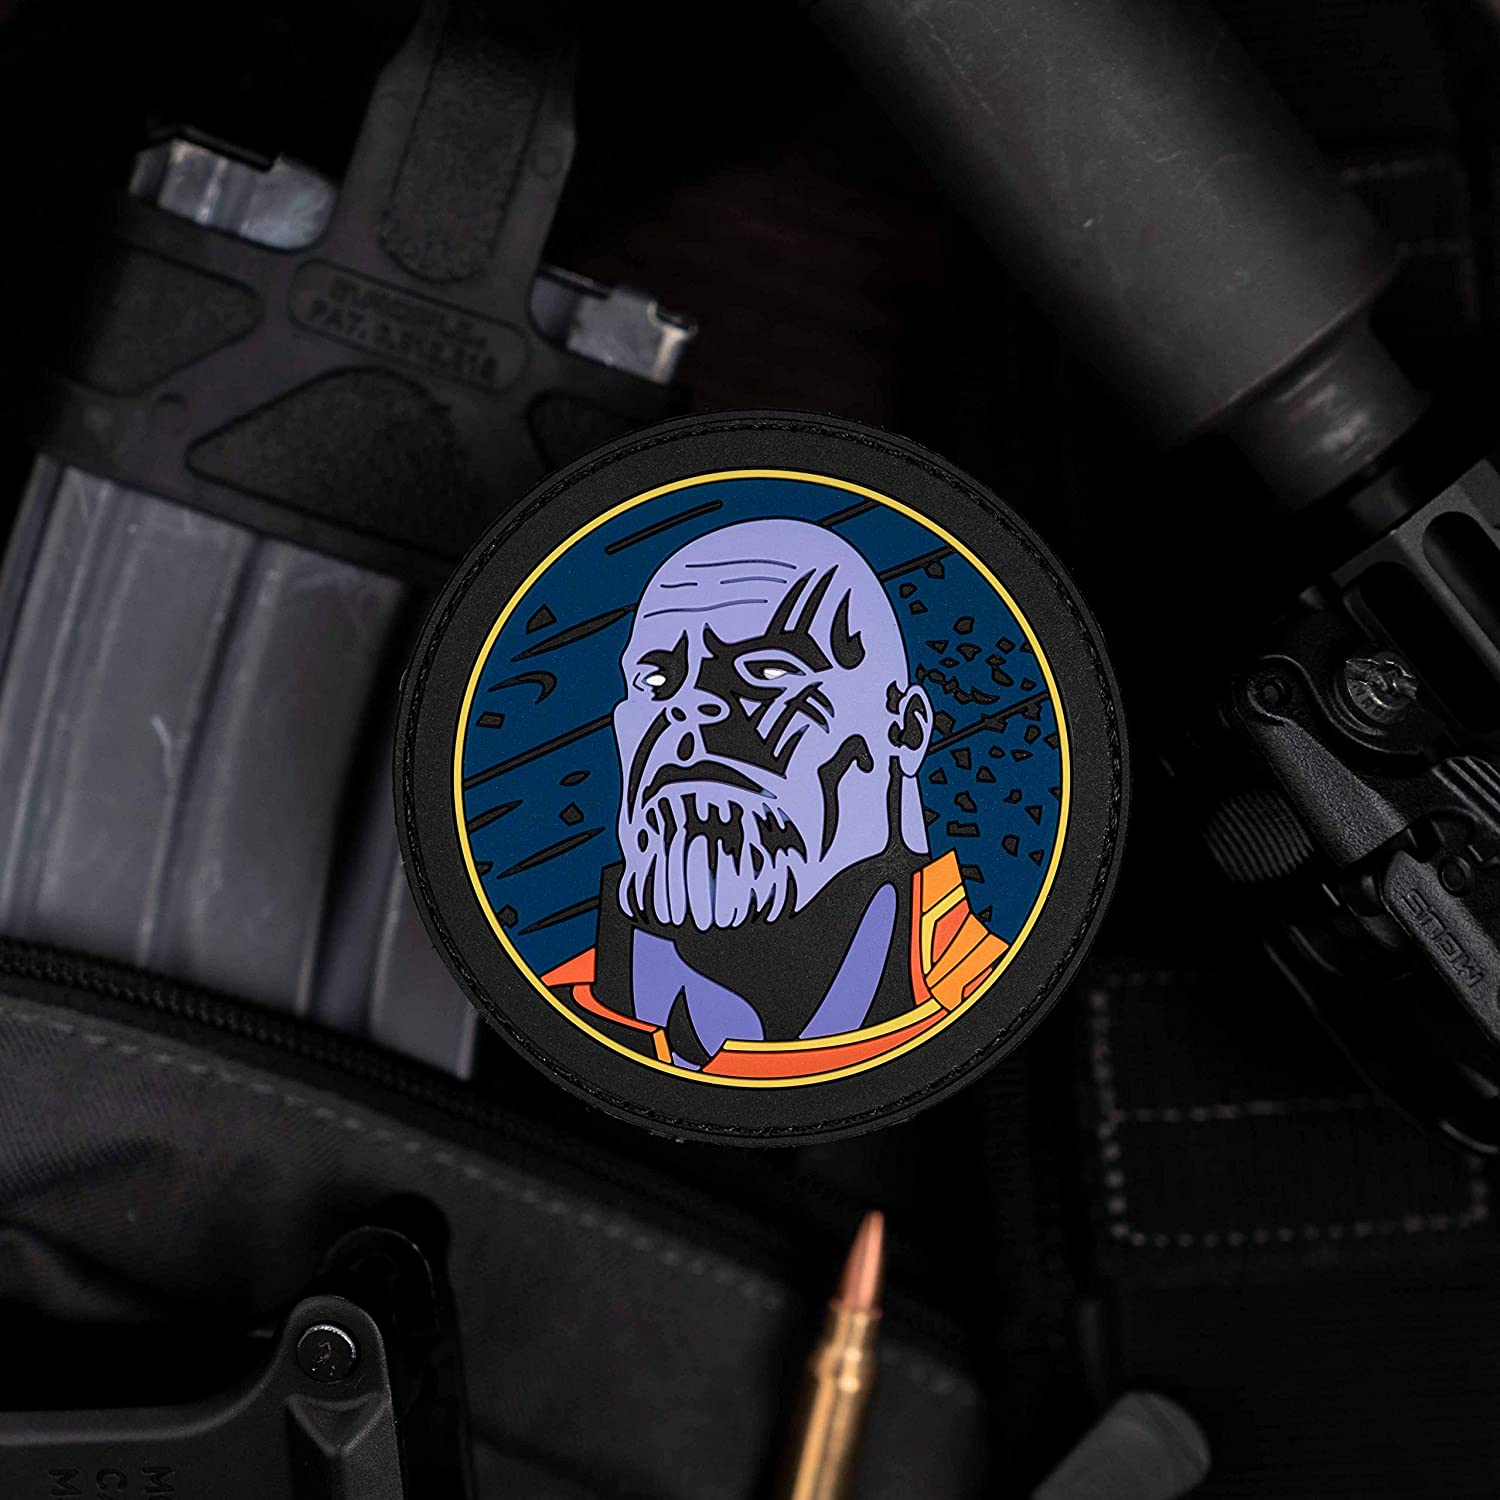 NEO Tactical Gear Thanos MCU PVC Rubber Morale Patch – Hook Backed with Loop Attachment Piece That Can Be Sewn On